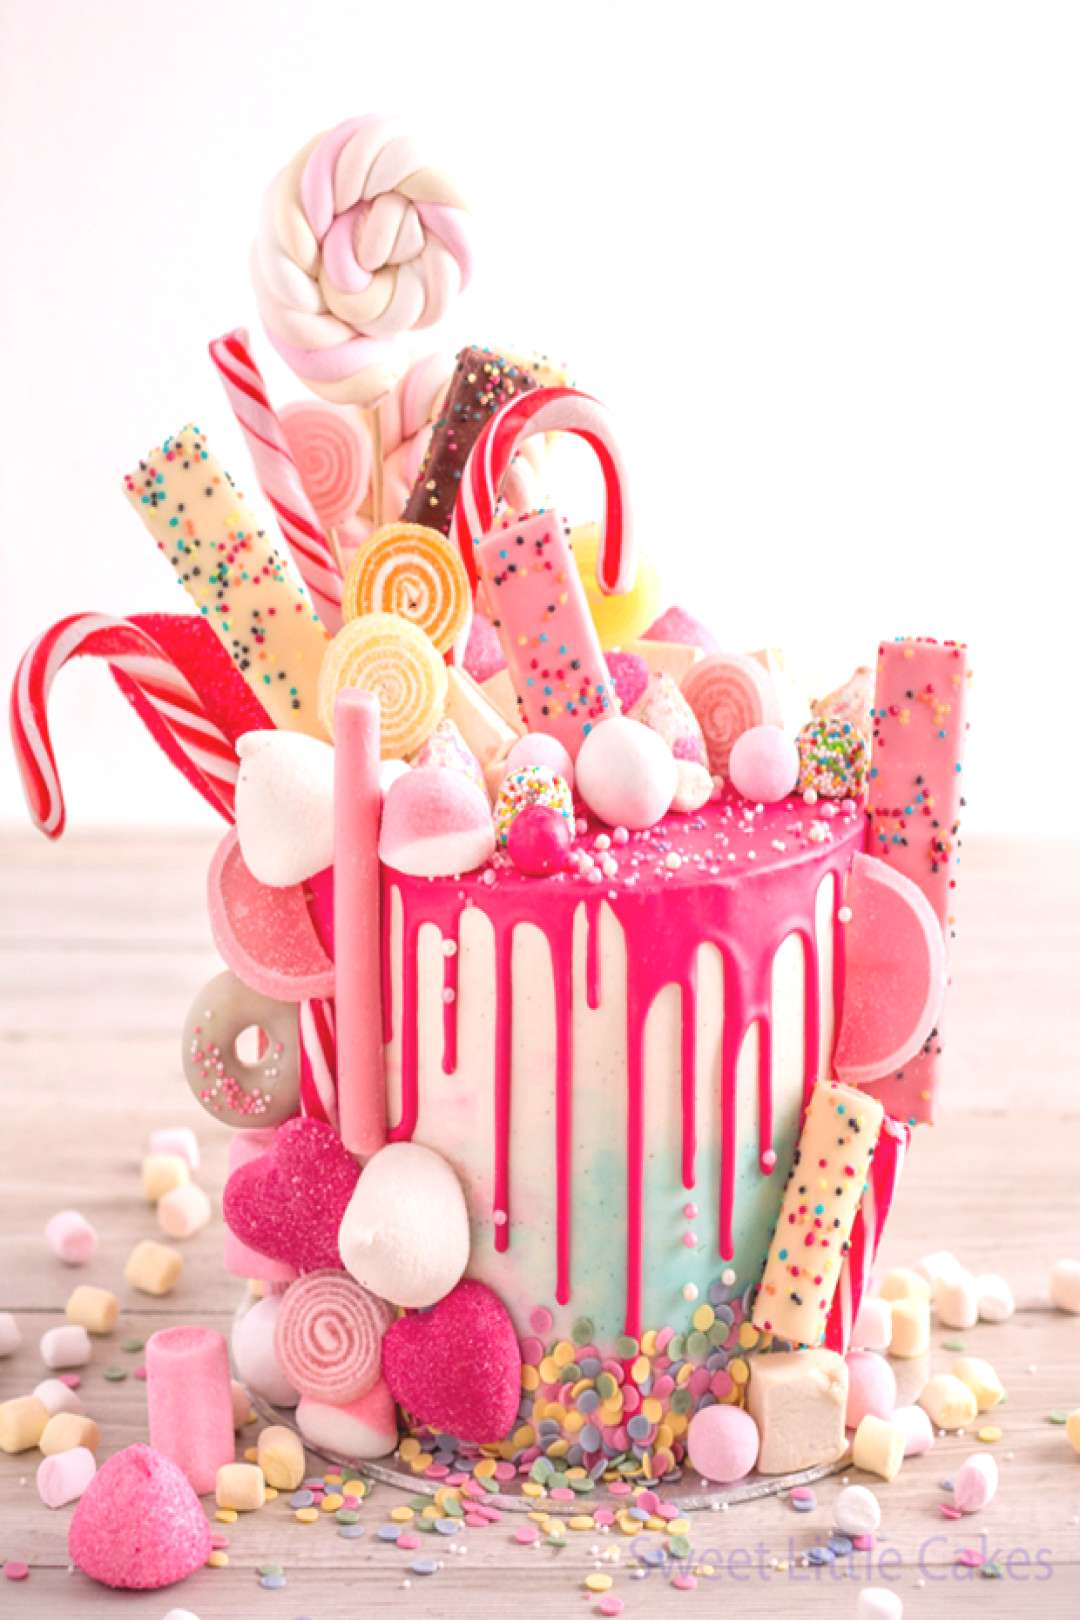 Cake, Sweetie! 19 Epic Candy-Covered Wedding Cakes |  -  Cake, Sweetie! 19 Epic Candy-Covered Weddi